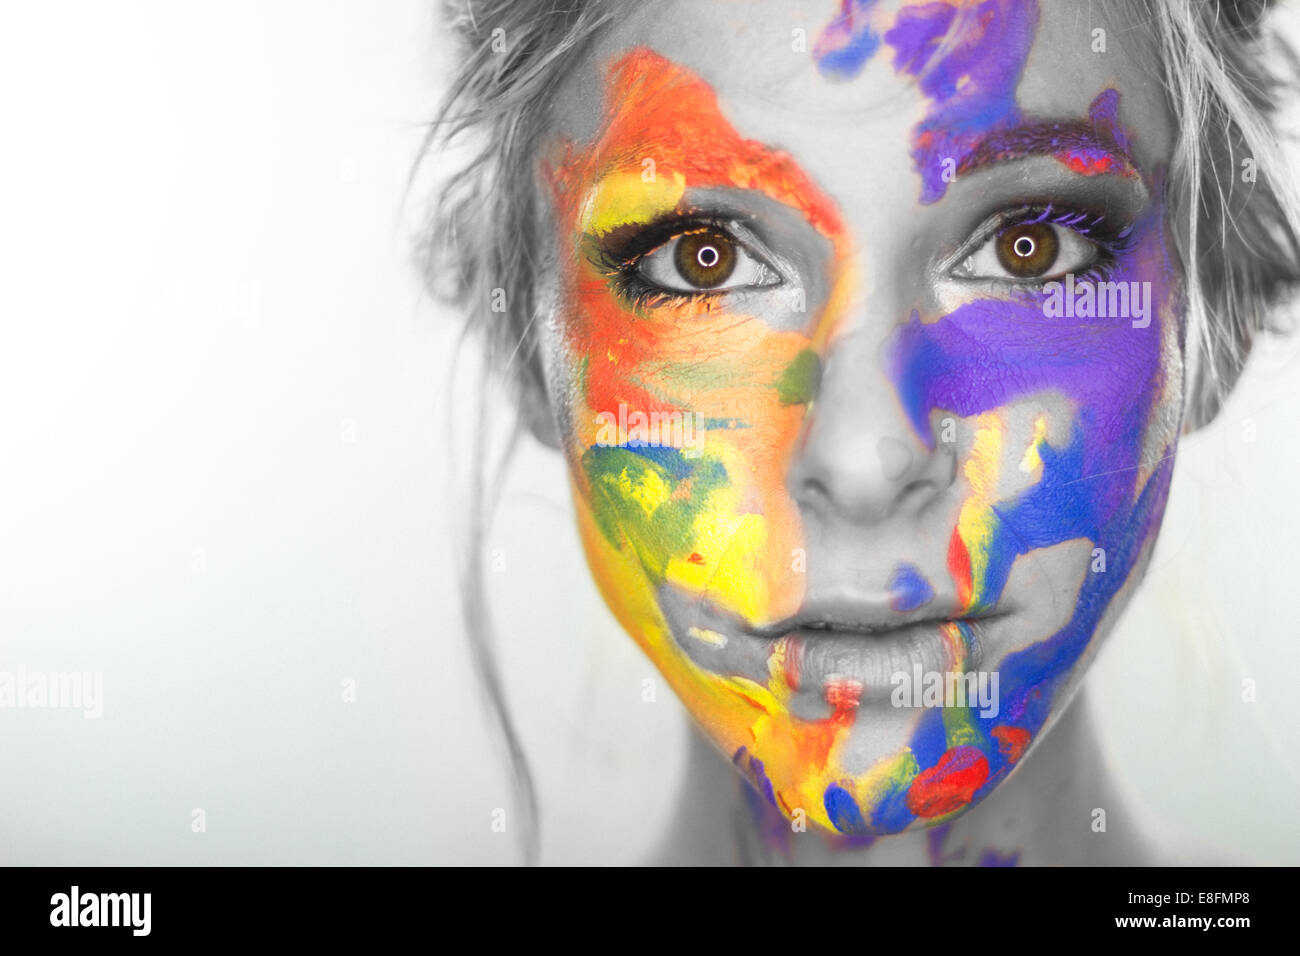 Studio shot of woman's head with painted face - Stock Image